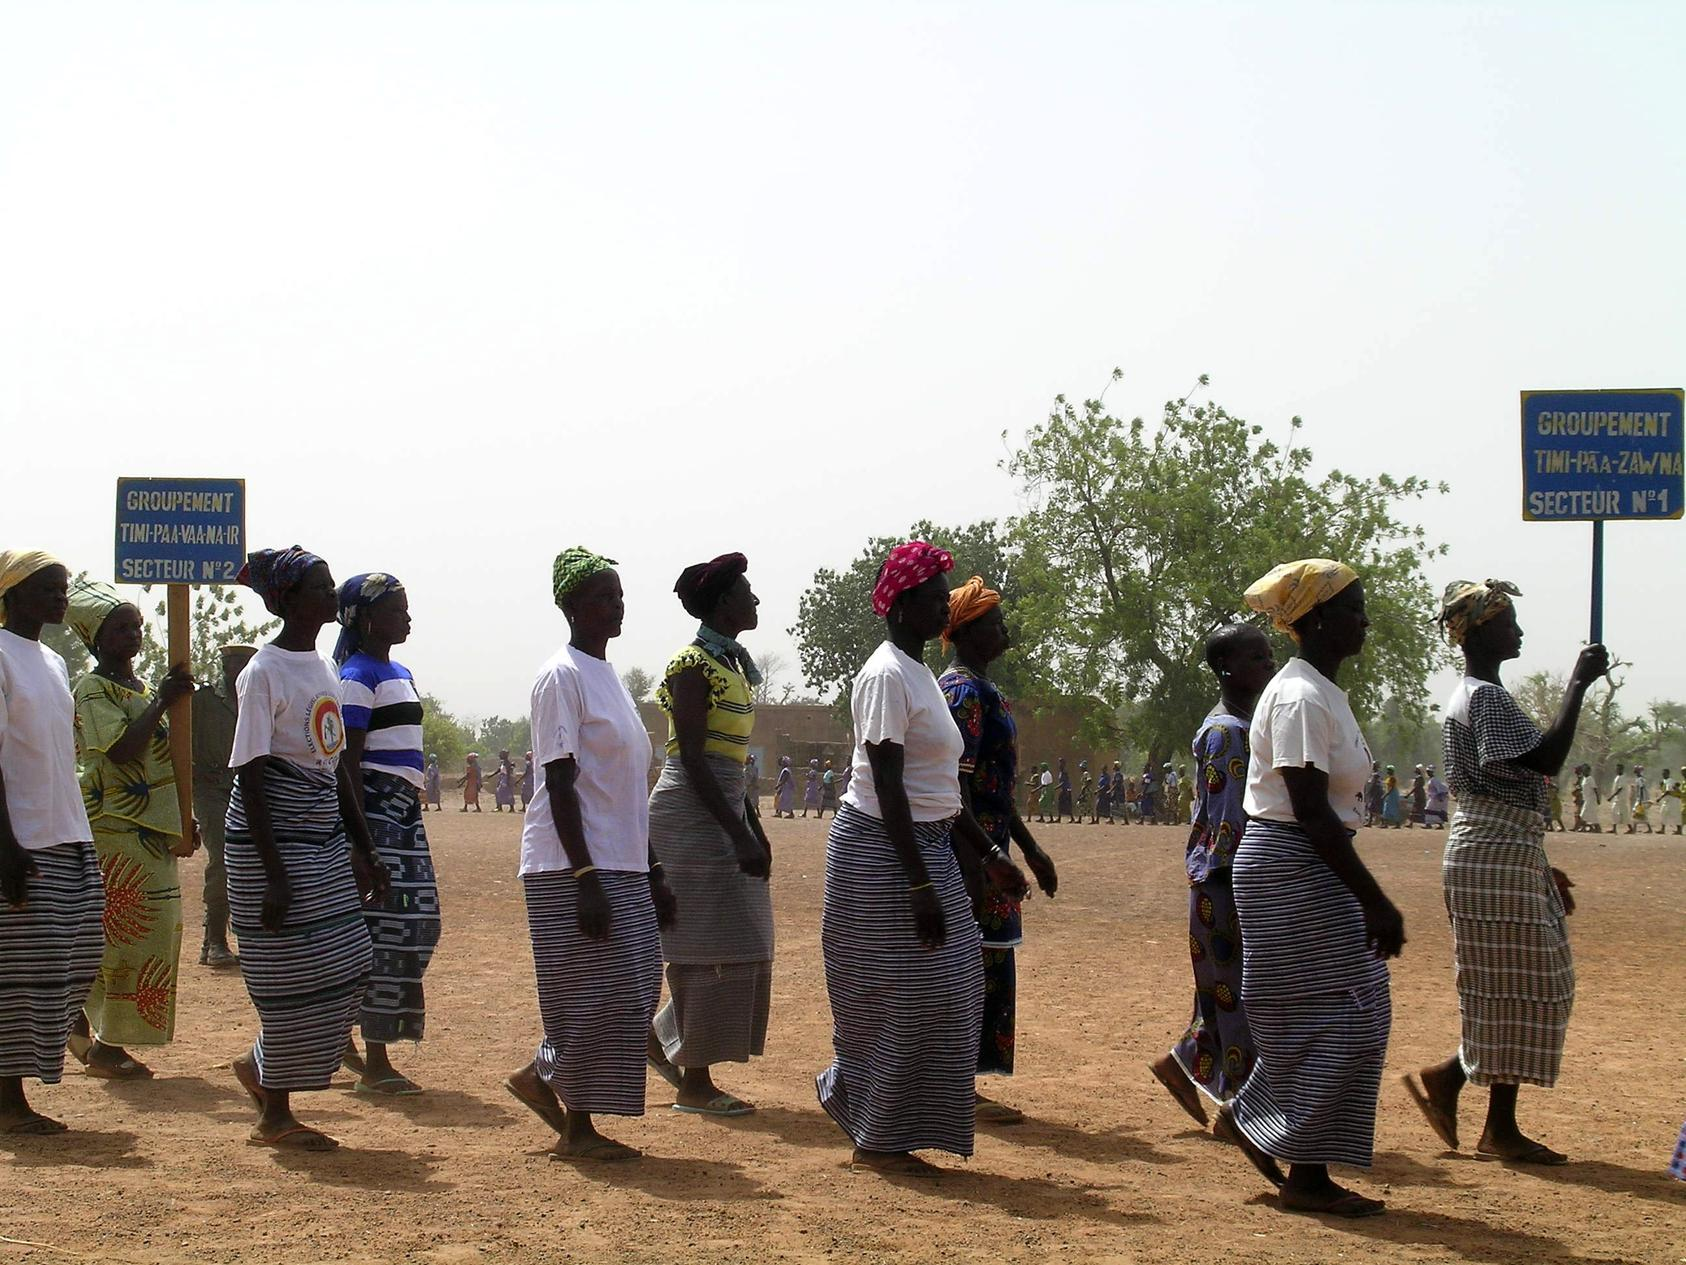 International Women's Day 2008 in Korgnegane, Bougouriba Province in the Burkina Faso